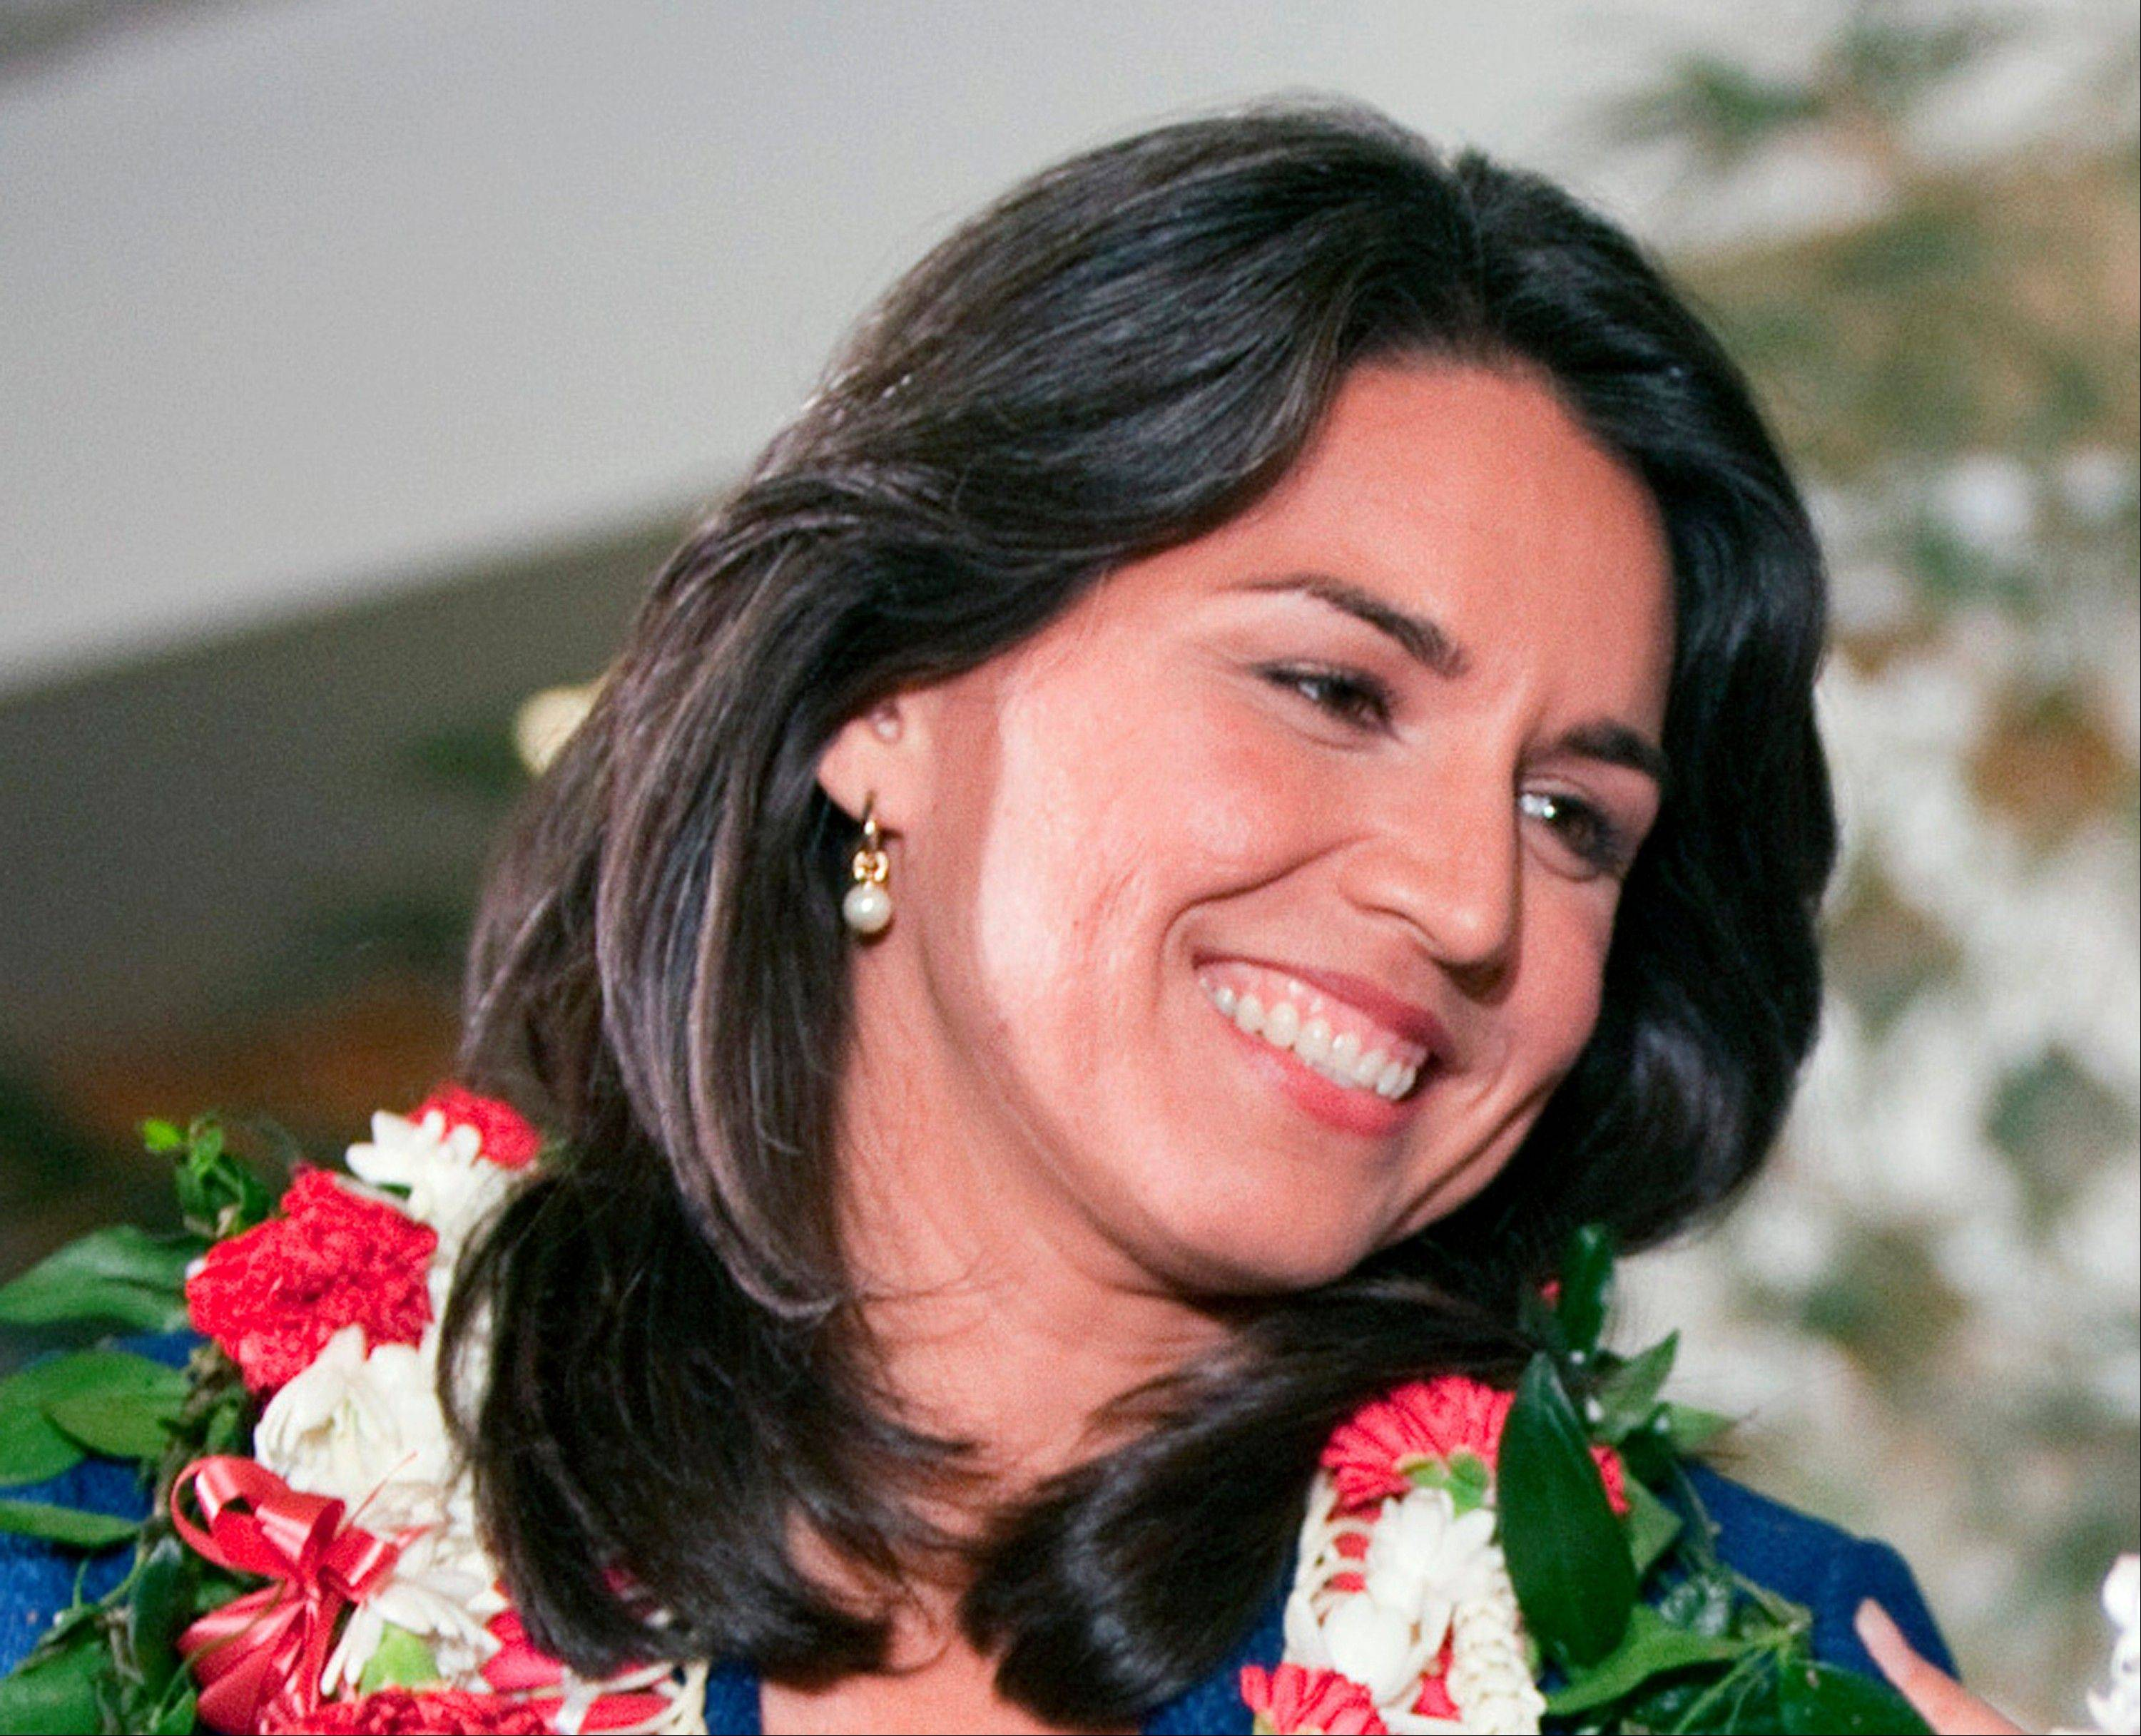 Iraq War veteran Rep.-elect Tulsi Gabbard in Honolulu. Veterans groups say the influx of Iraq and Afghanistan veterans in Congress is welcome because it comes at a time when the overall number of veterans in Congress is on a steep and steady decline. In the mid-1970s, the vast majority of lawmakers tended to be veterans.